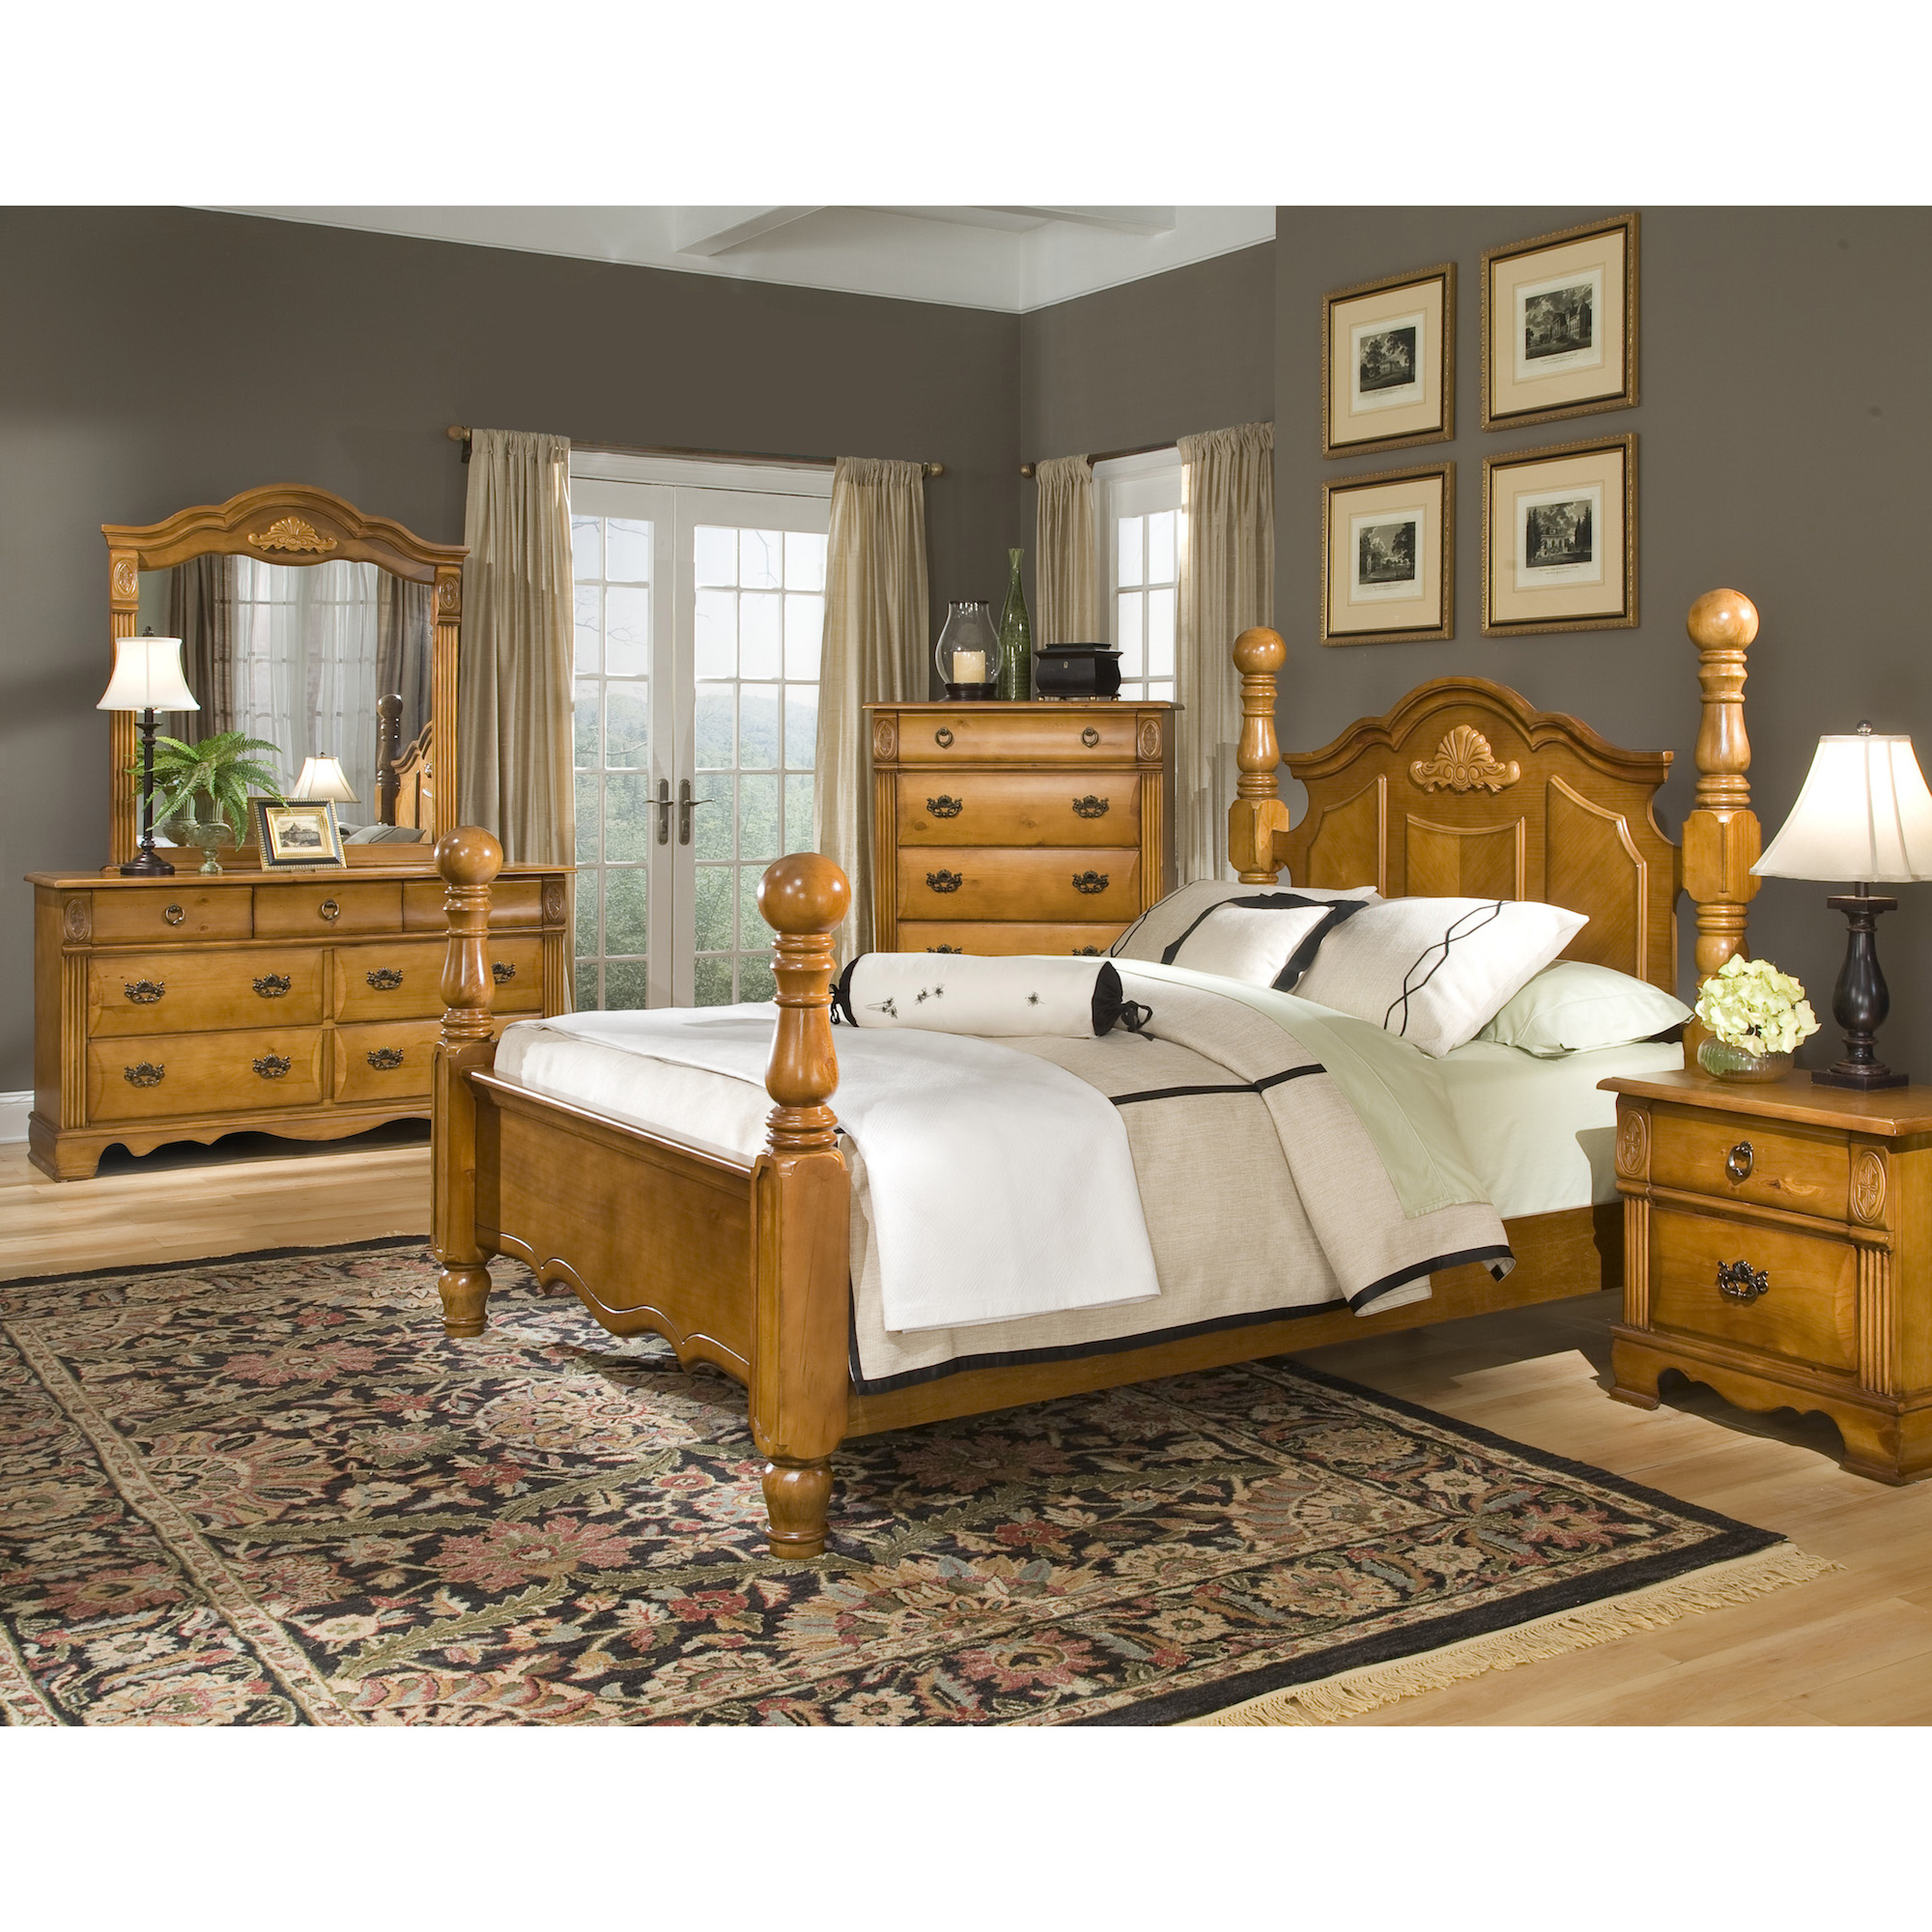 850 Bedroom Sets With Monthly Payments Best Free